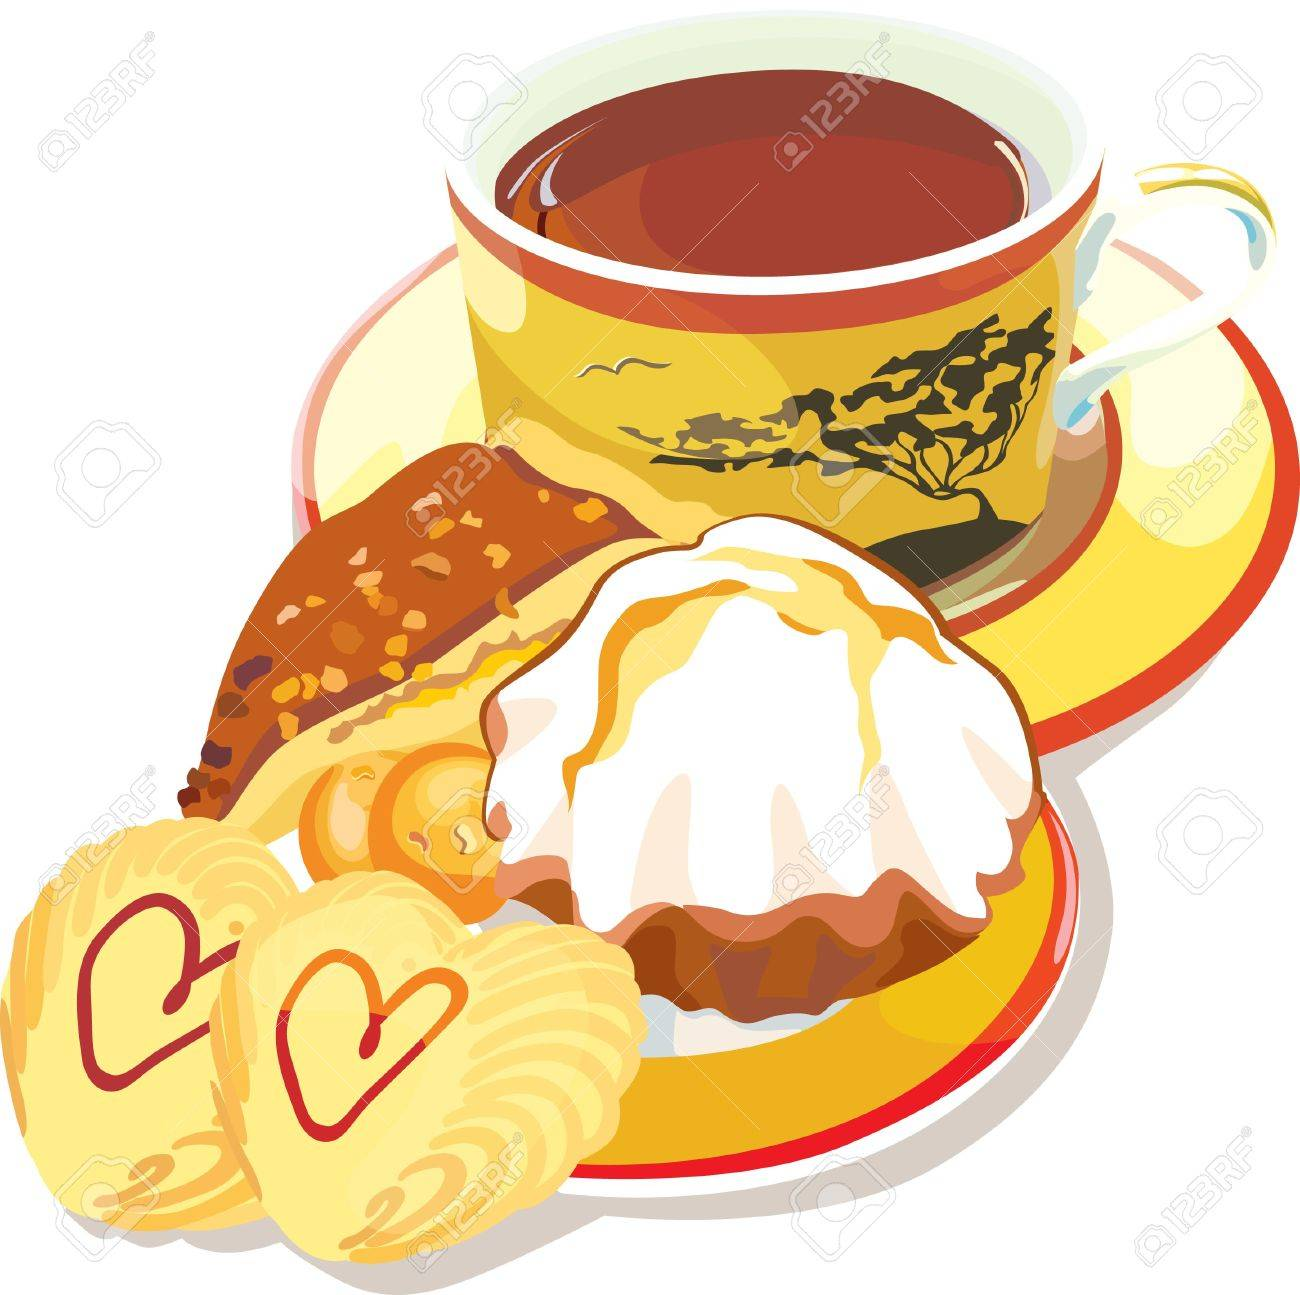 illustration contains the image of  Cup of coffee and cookies Stock Vector - 14491497